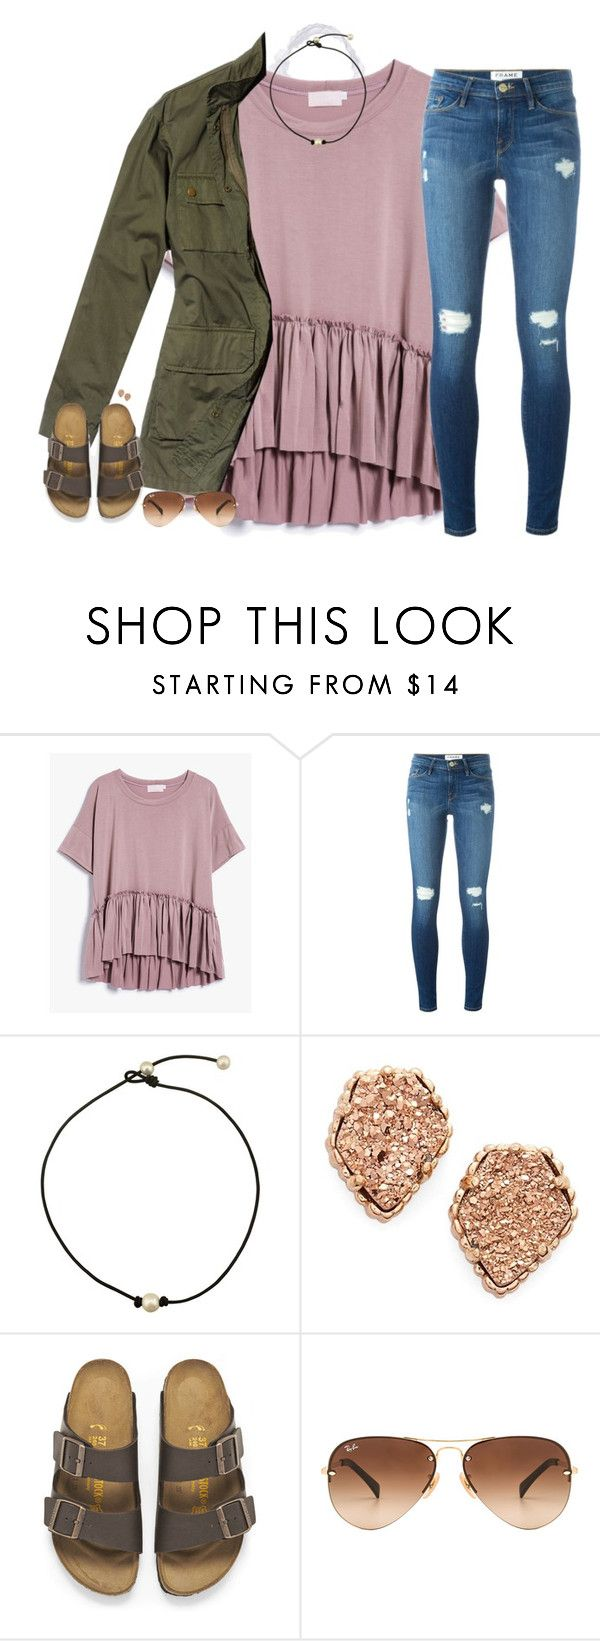 """""""I may be lost...but my hearts the compass"""" by southernstruttin ❤ liked on Polyvore featuring Frame, Kendra Scott, Nili Lotan, Birkenstock and Ray-Ban"""